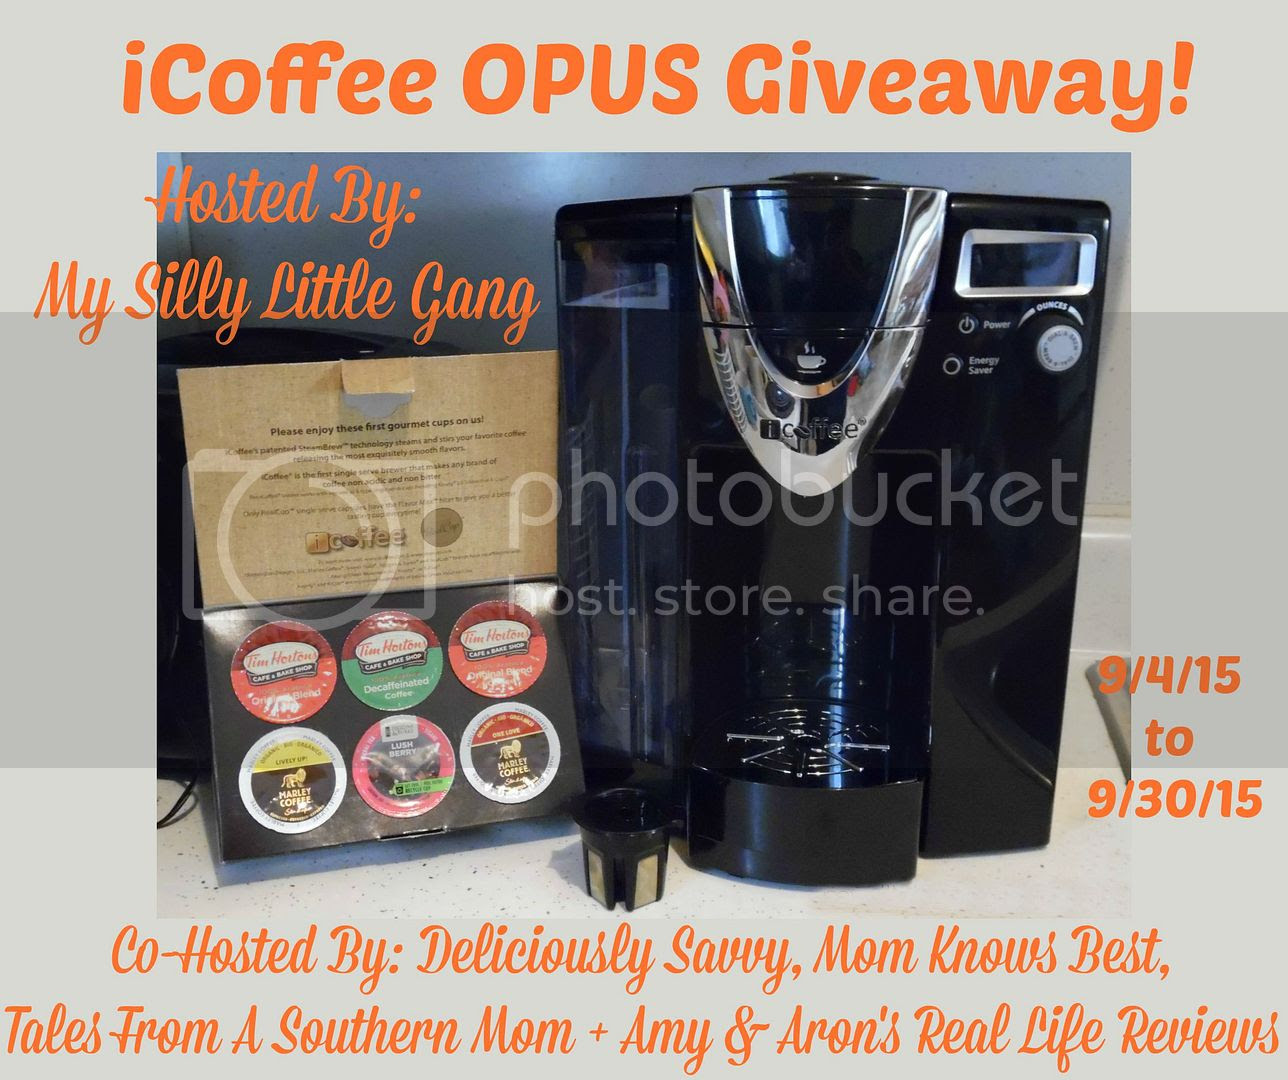 Enter the iCoffee OPUS Giveaway. Ends 9/30